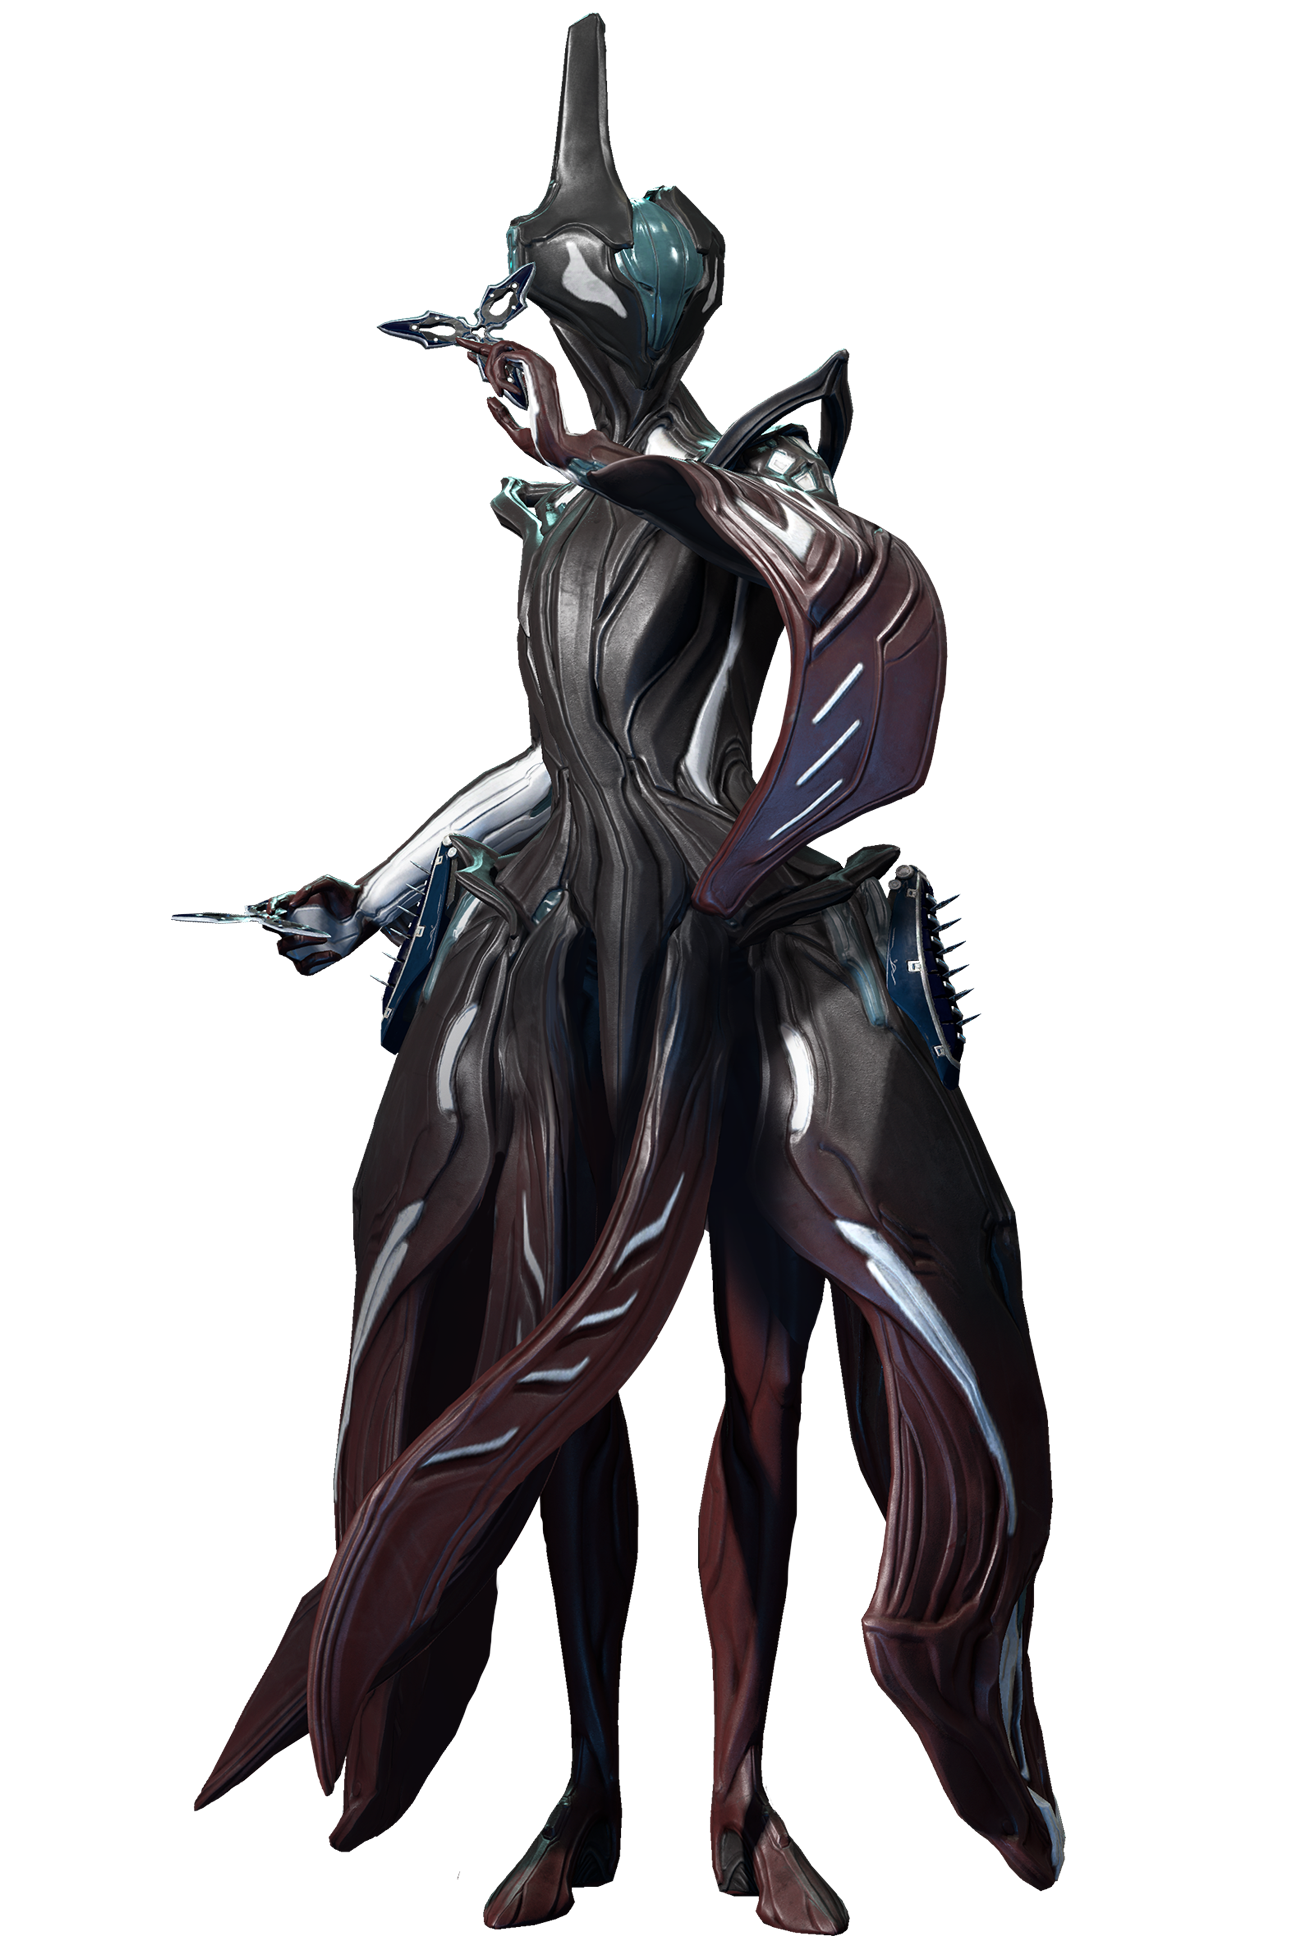 Warframe drawing equinox. Night is the form